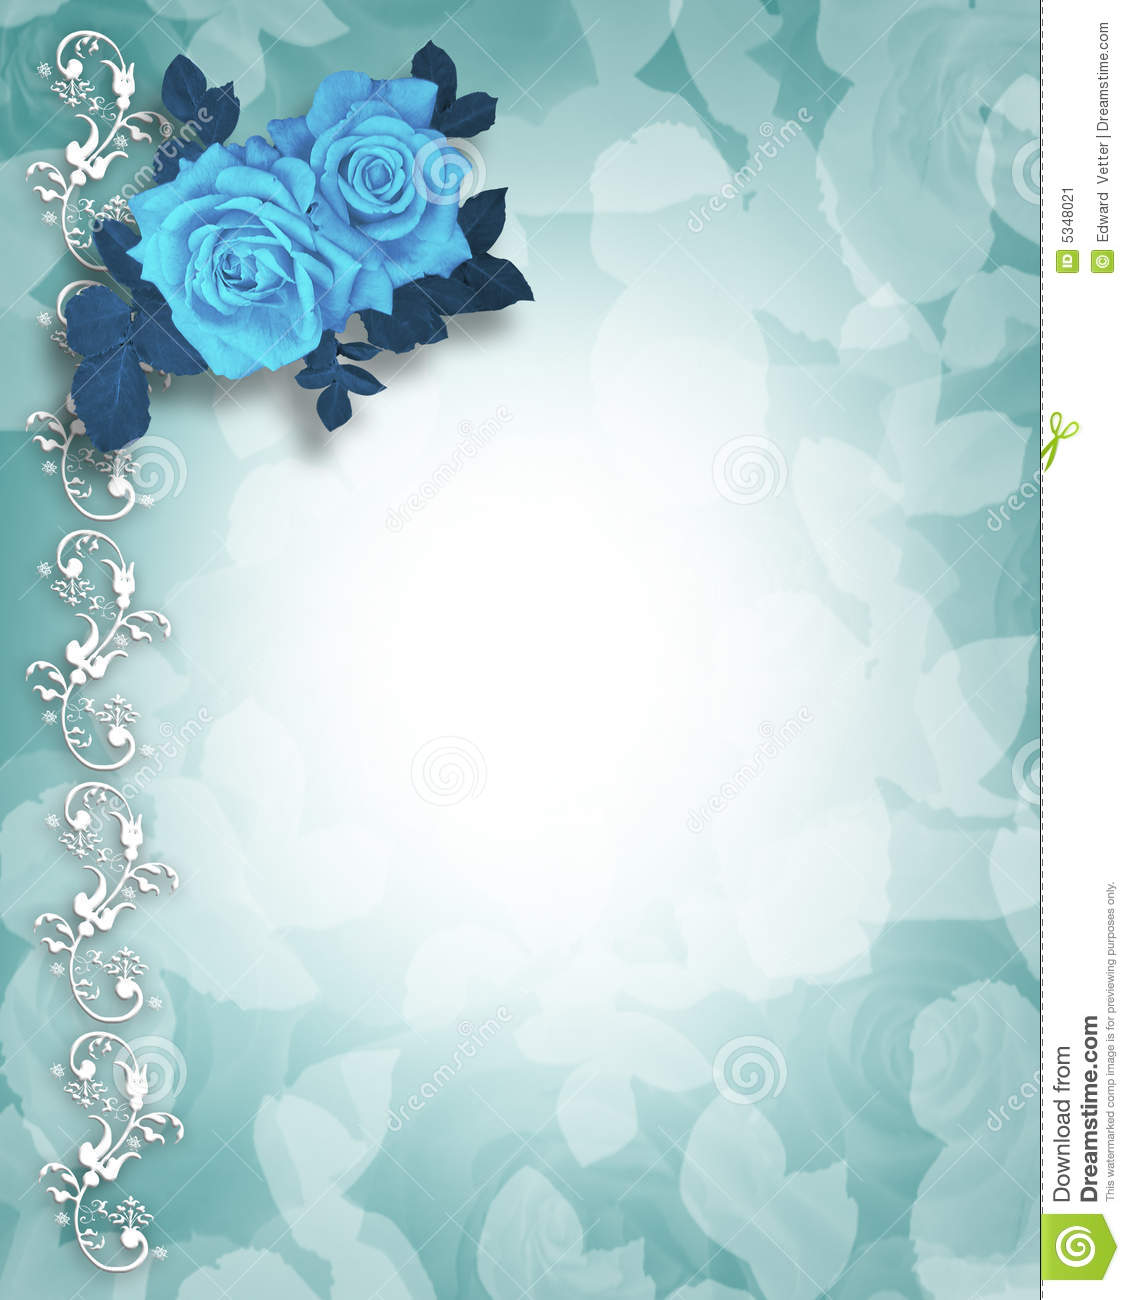 wedding invitation background blue - Vatoz.atozdevelopment.co